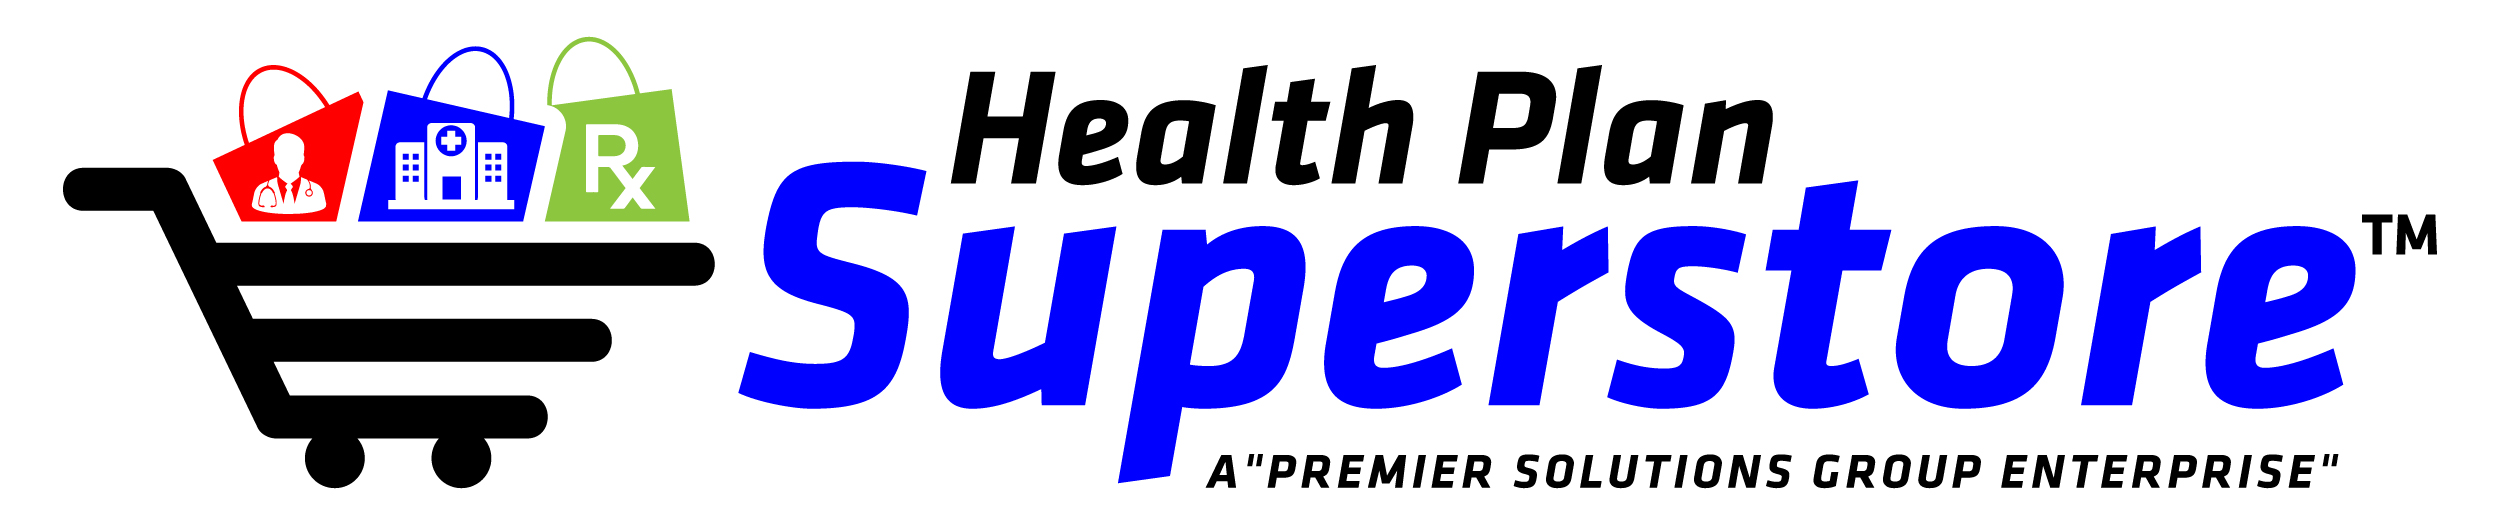 Health Plan Superstore Logo